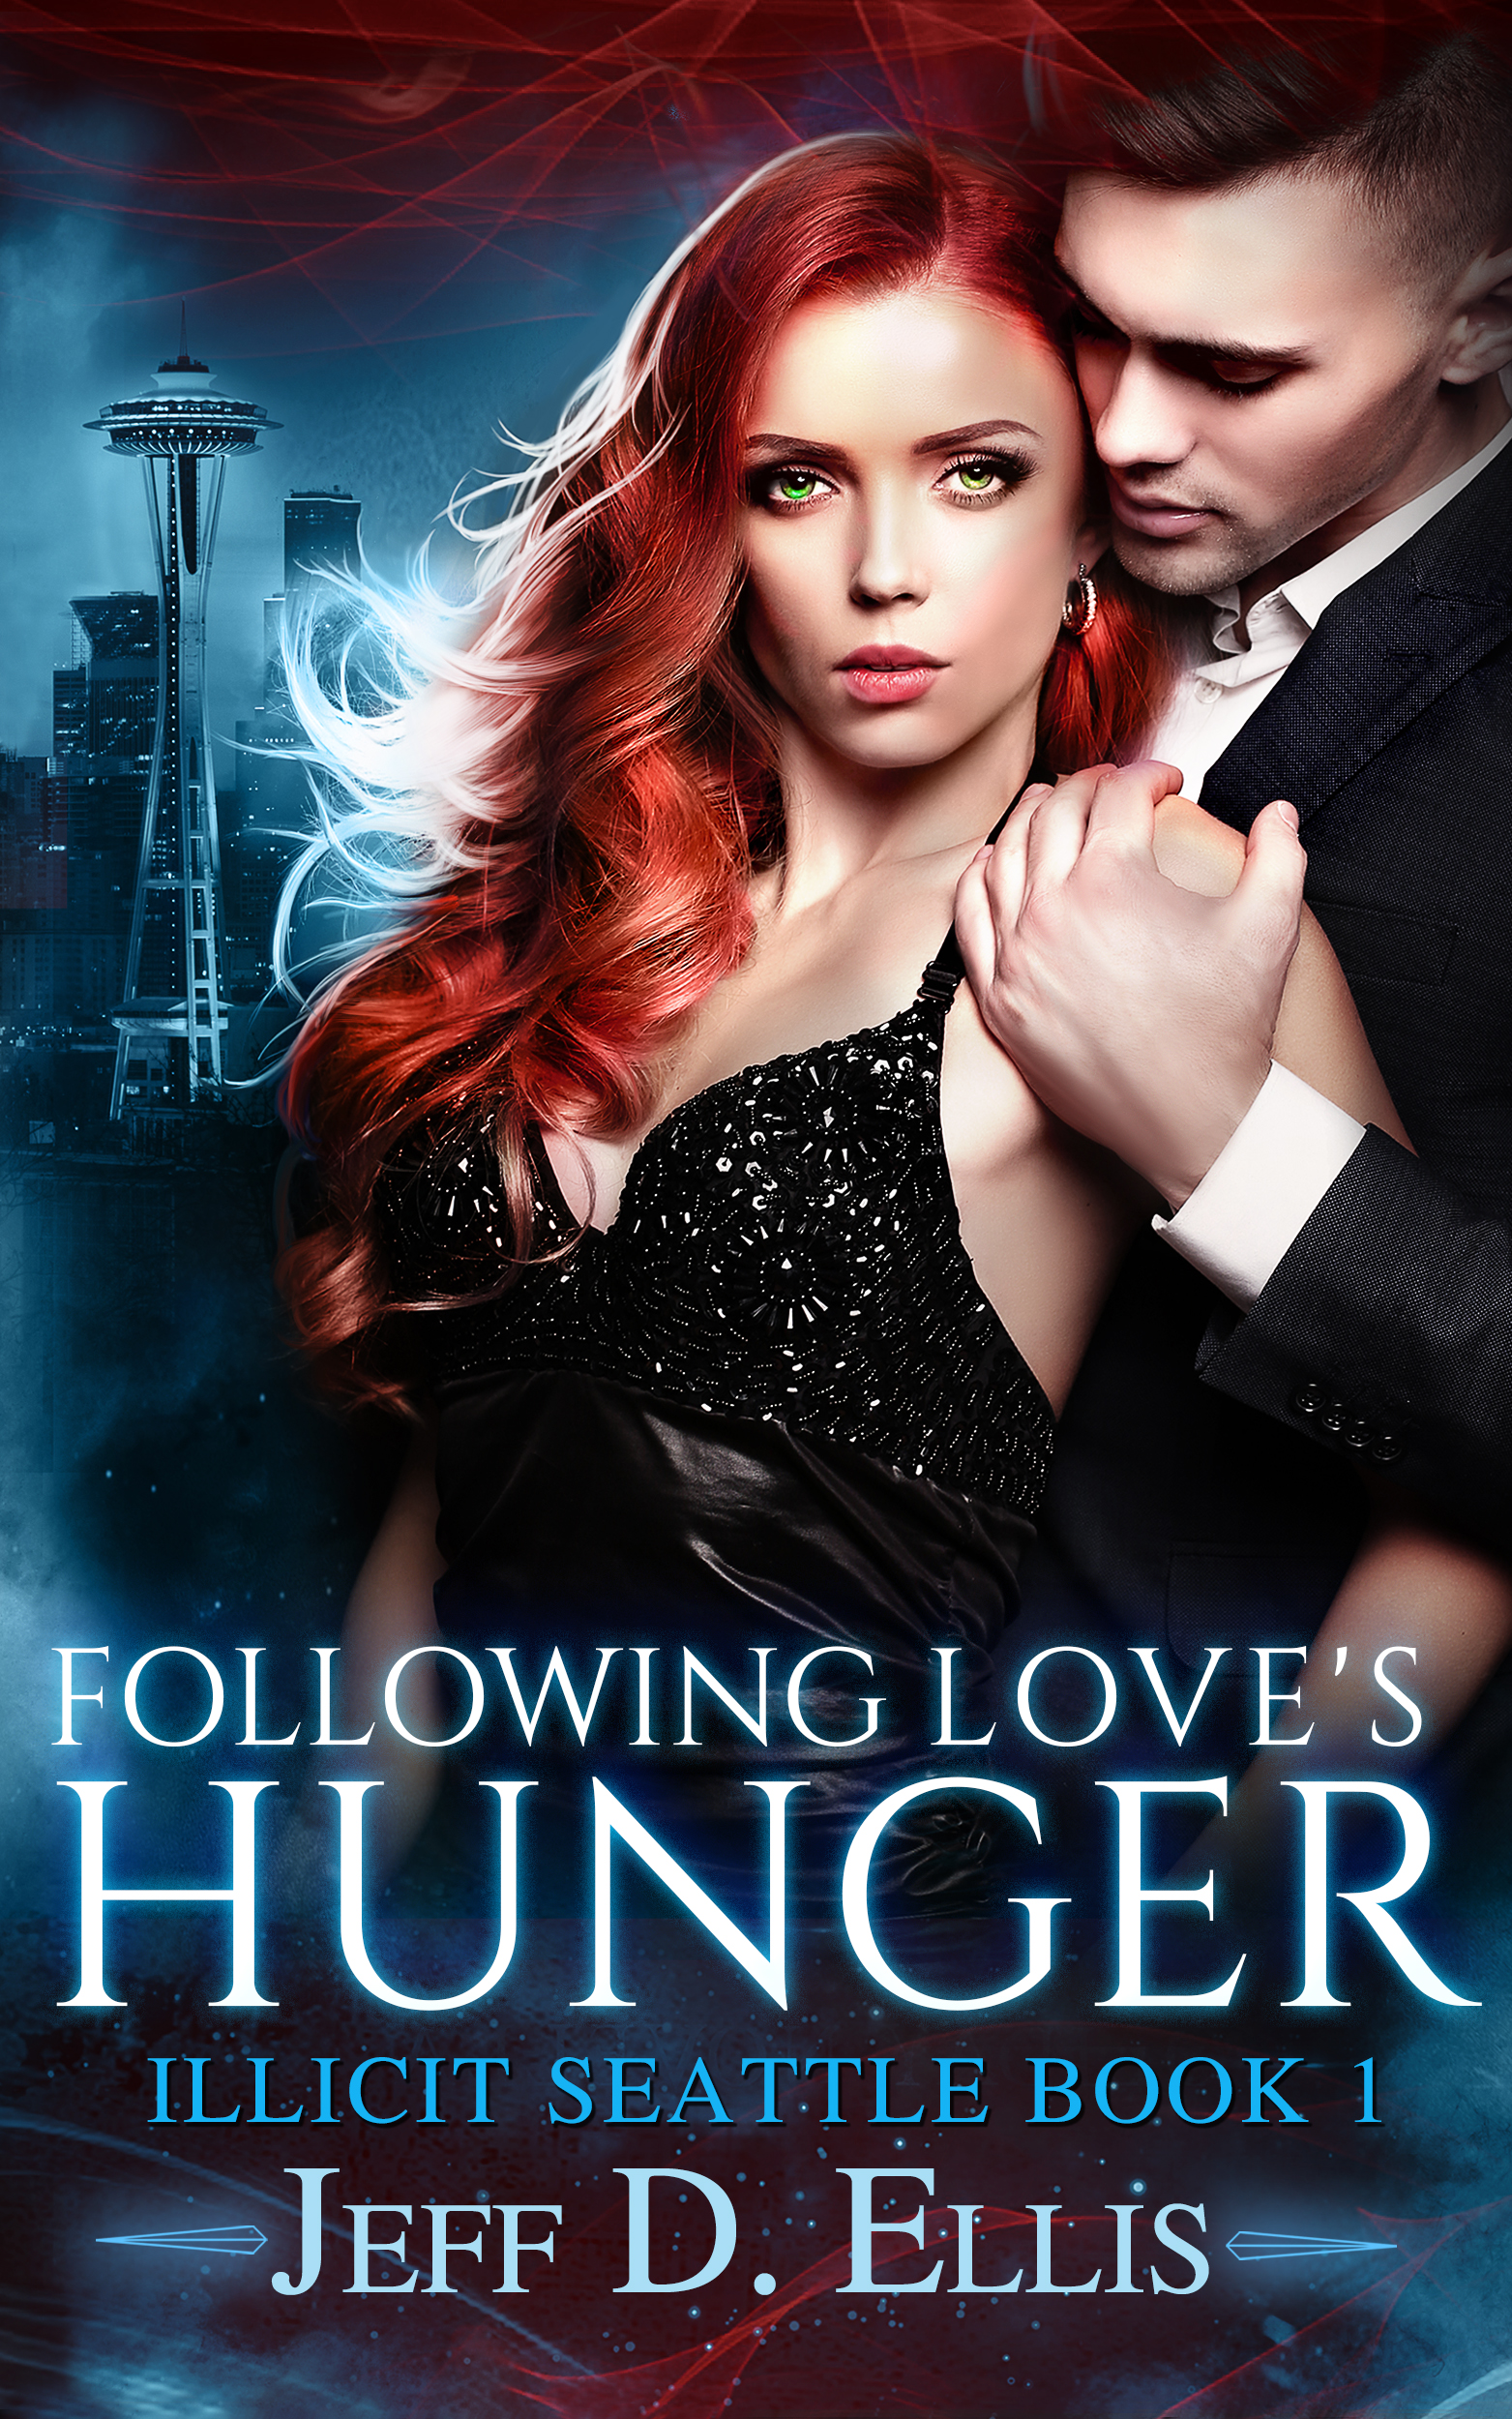 Following Love's Hunger